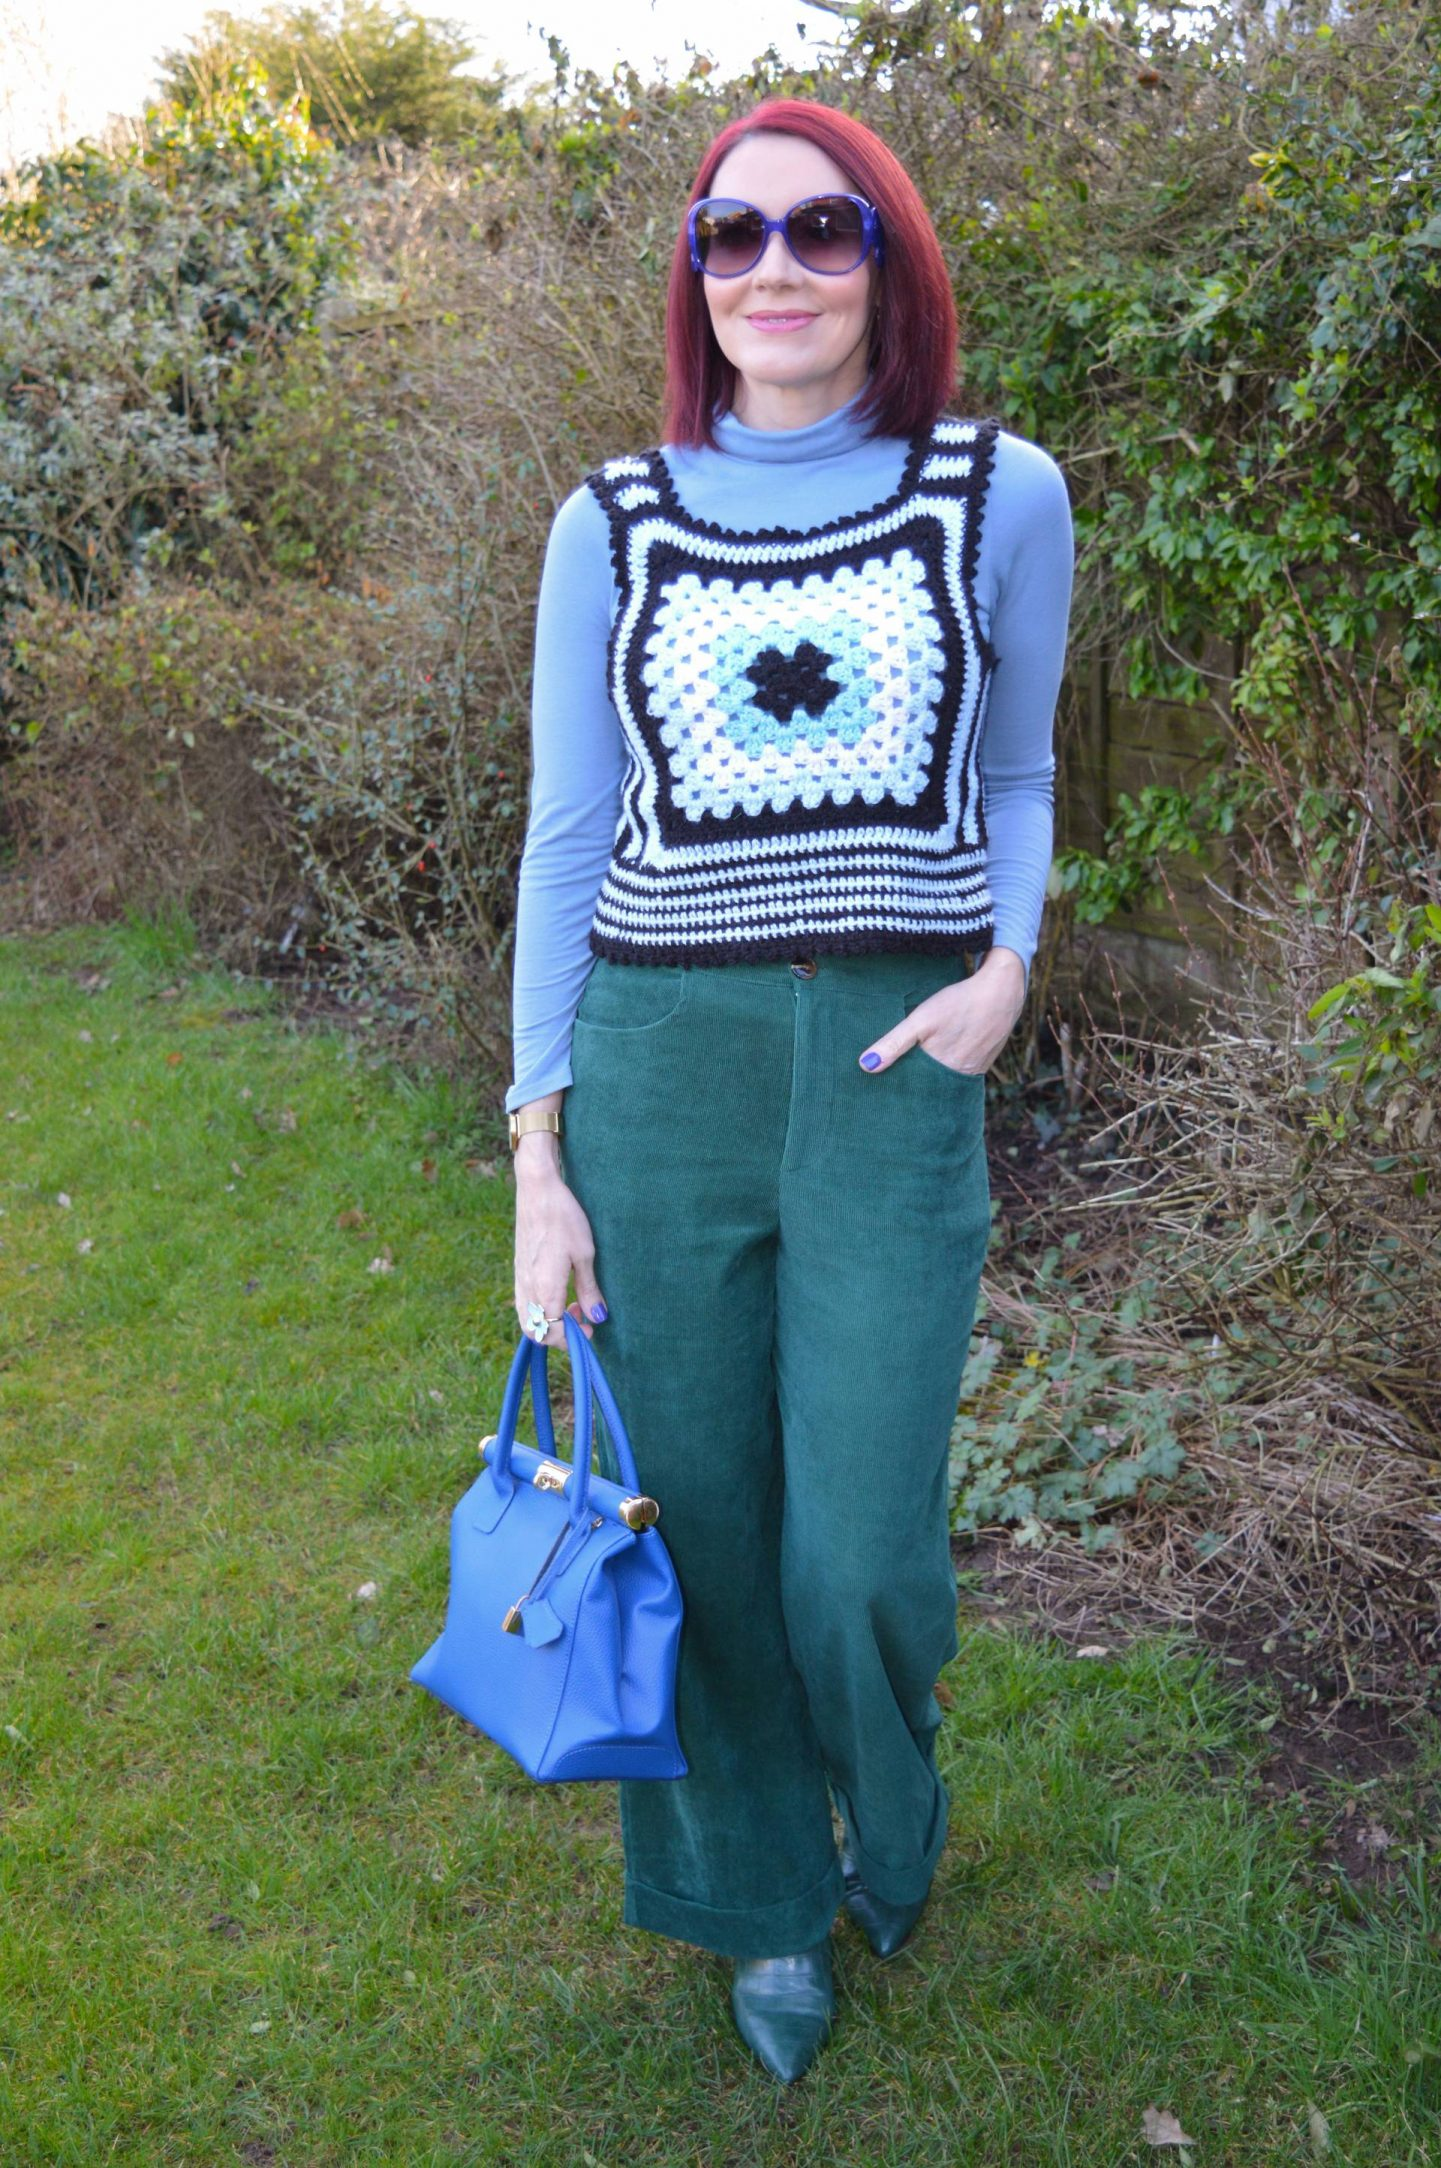 Coast green Cords and Crocheted Vest